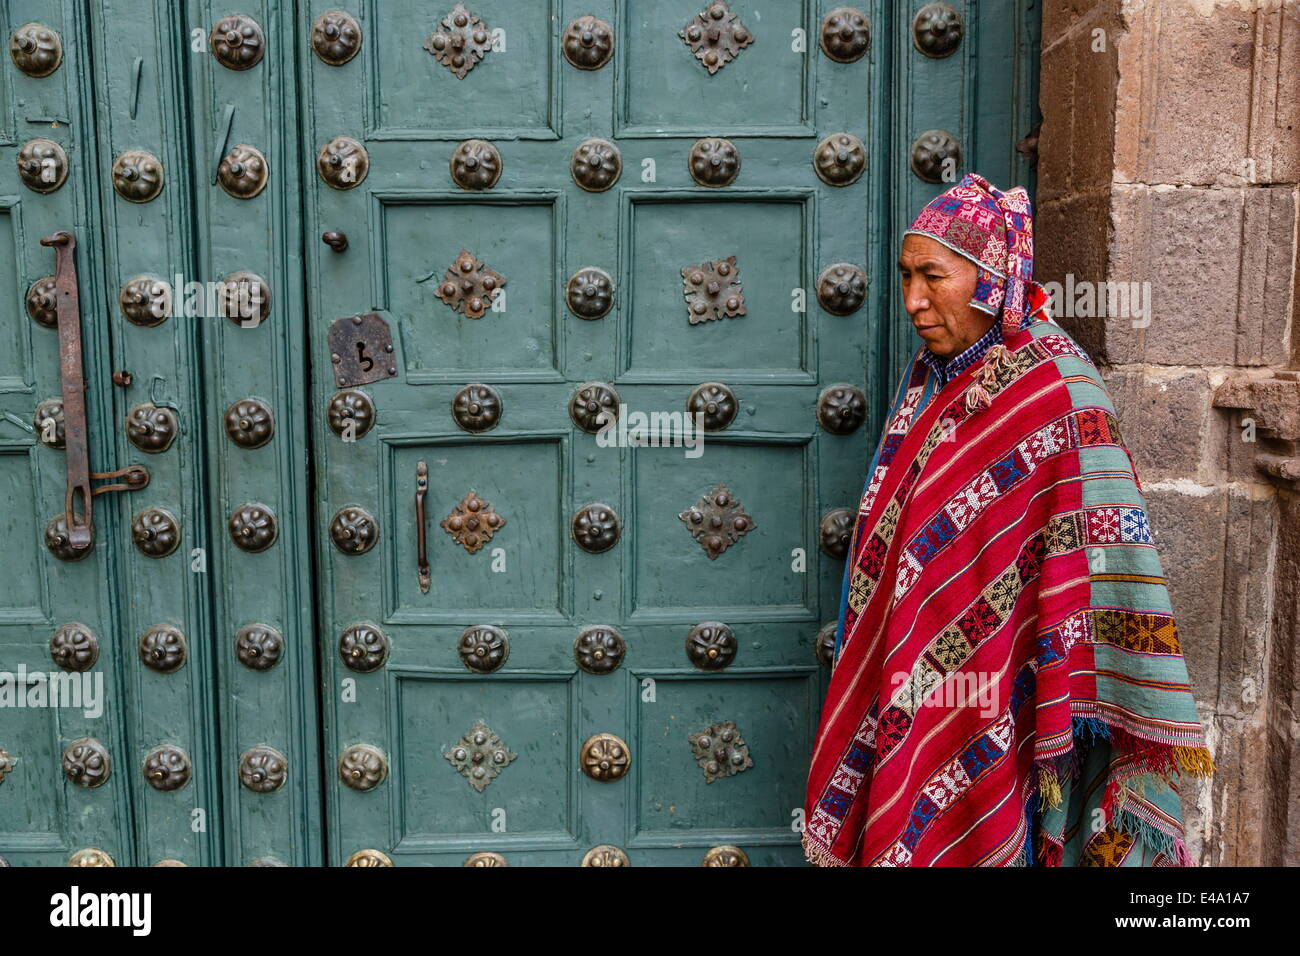 The entrance door to Capilla de San Ignacio de Loyola on Plaza de Armas, Cuzco, Peru, South America - Stock Image